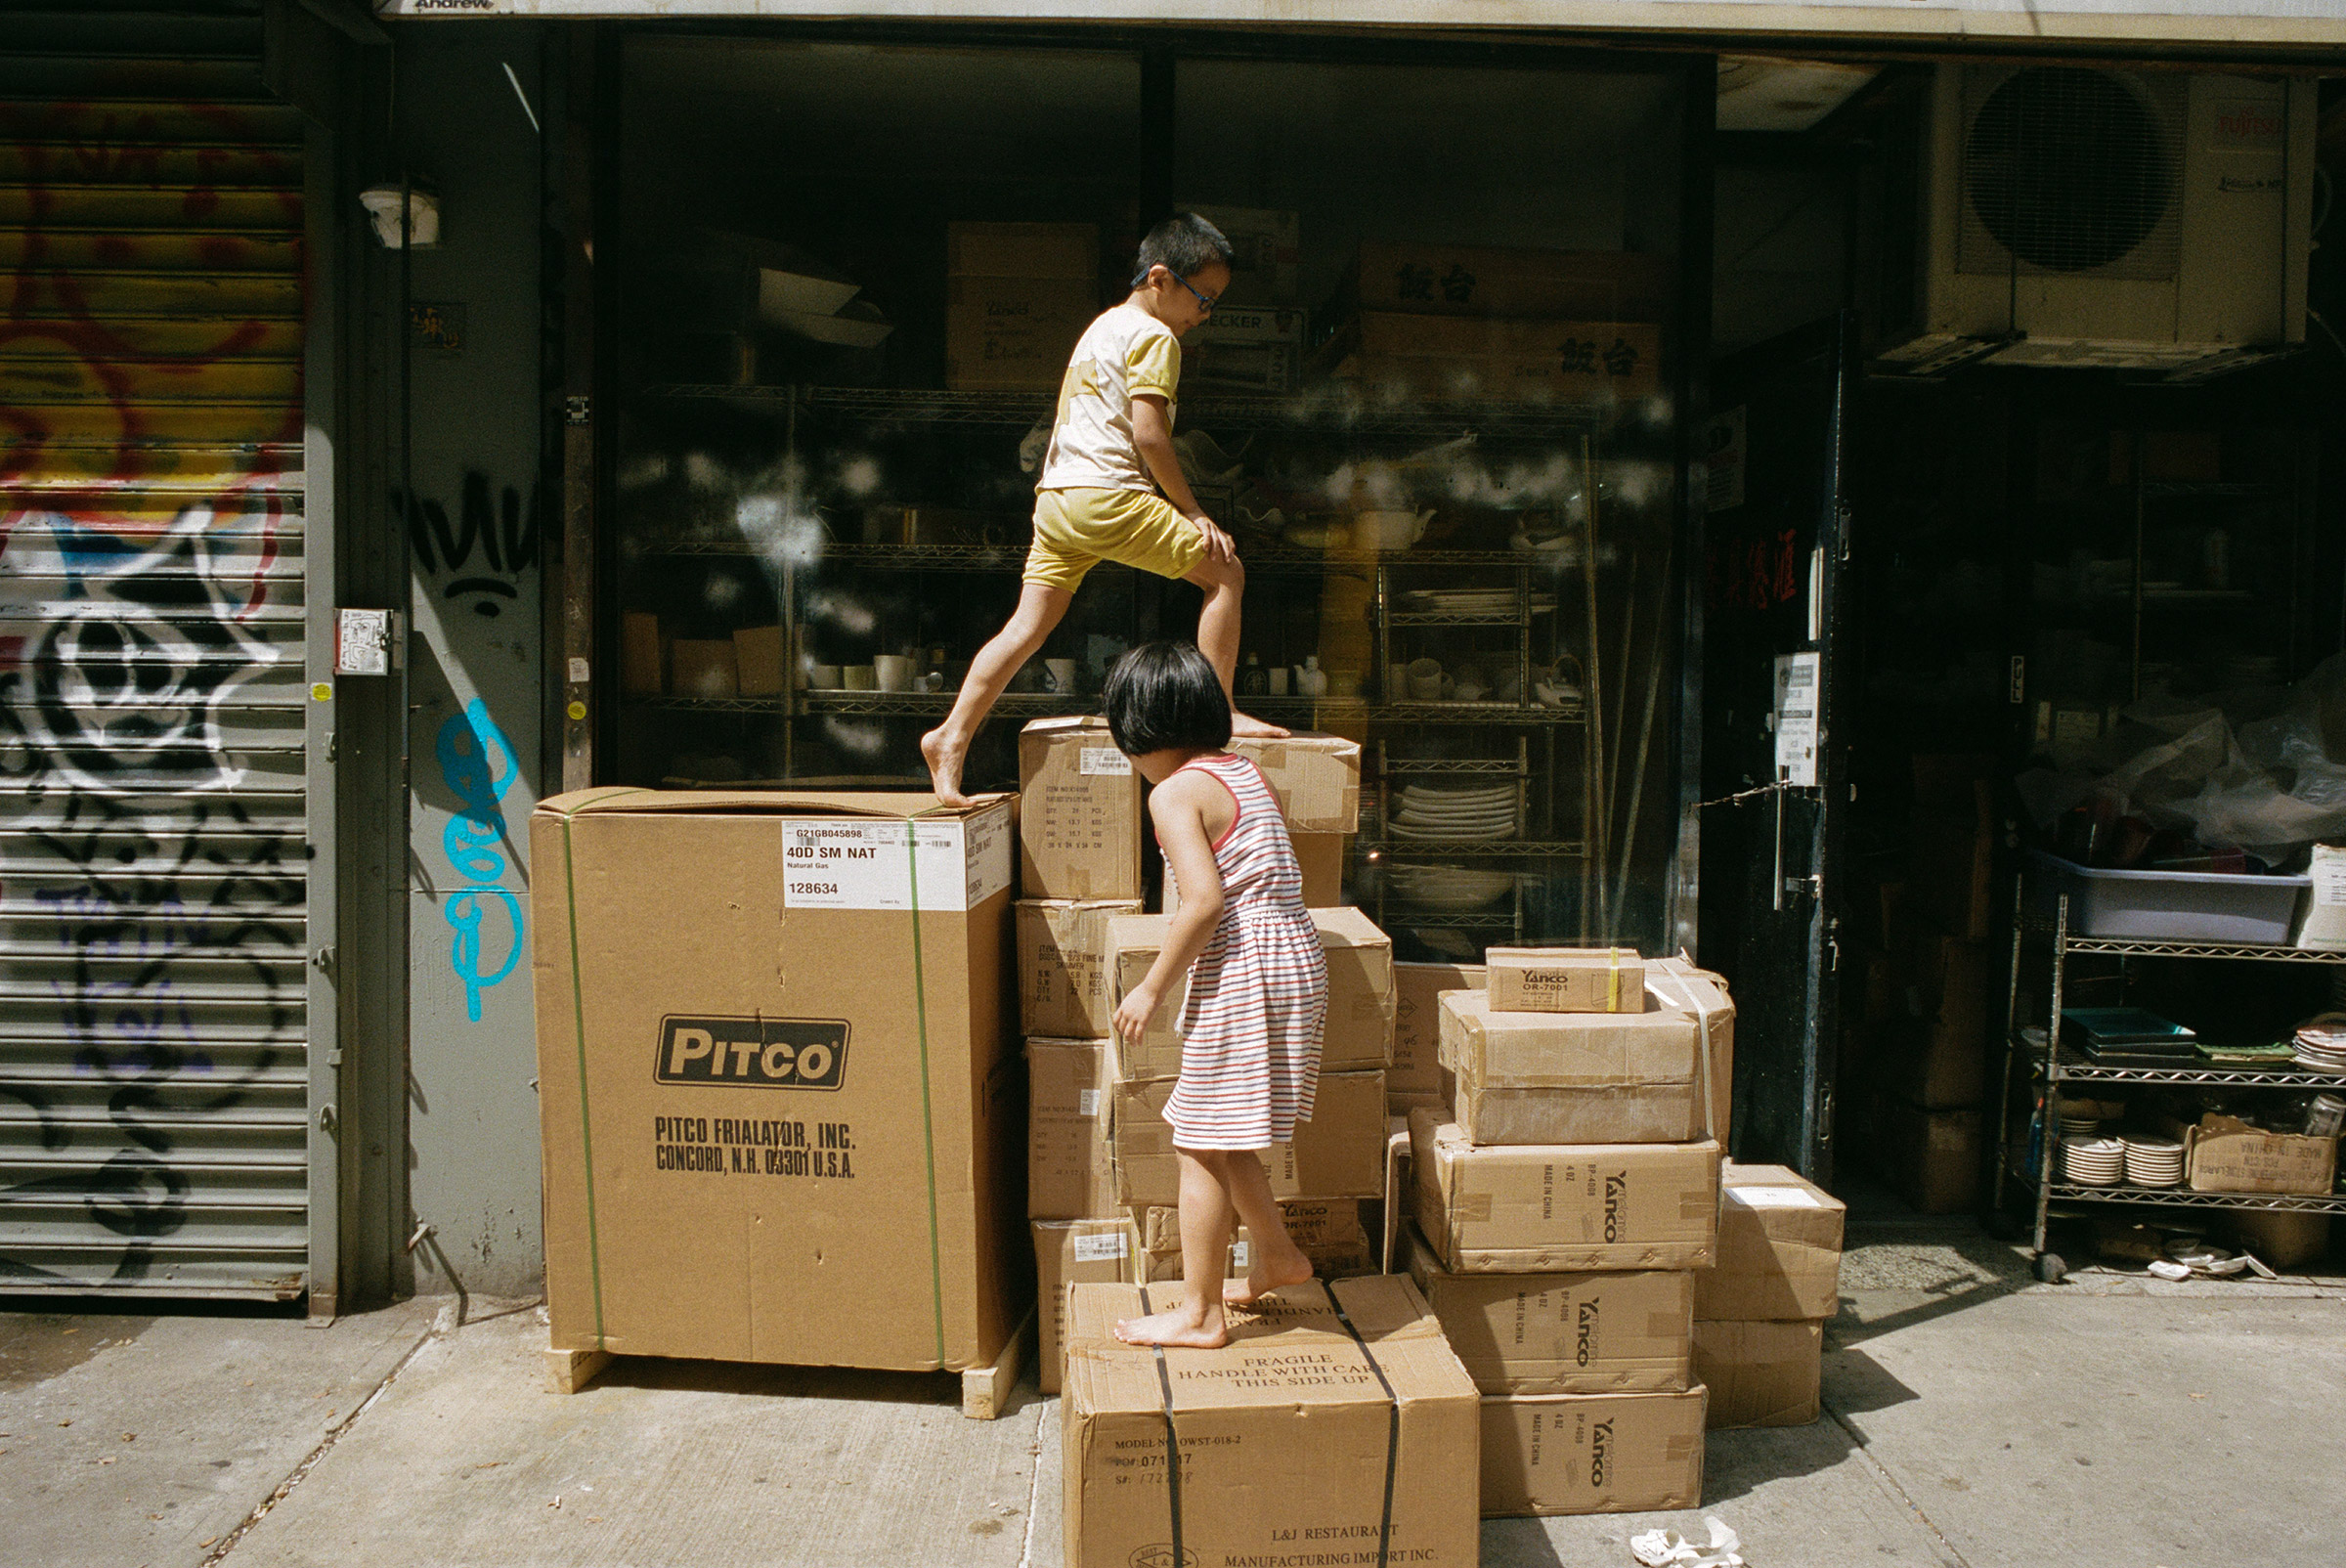 Kids climb on stacks of boxed kitchenware at the corner of Ludlow and Hester Streets, Sept. 1, 2021.